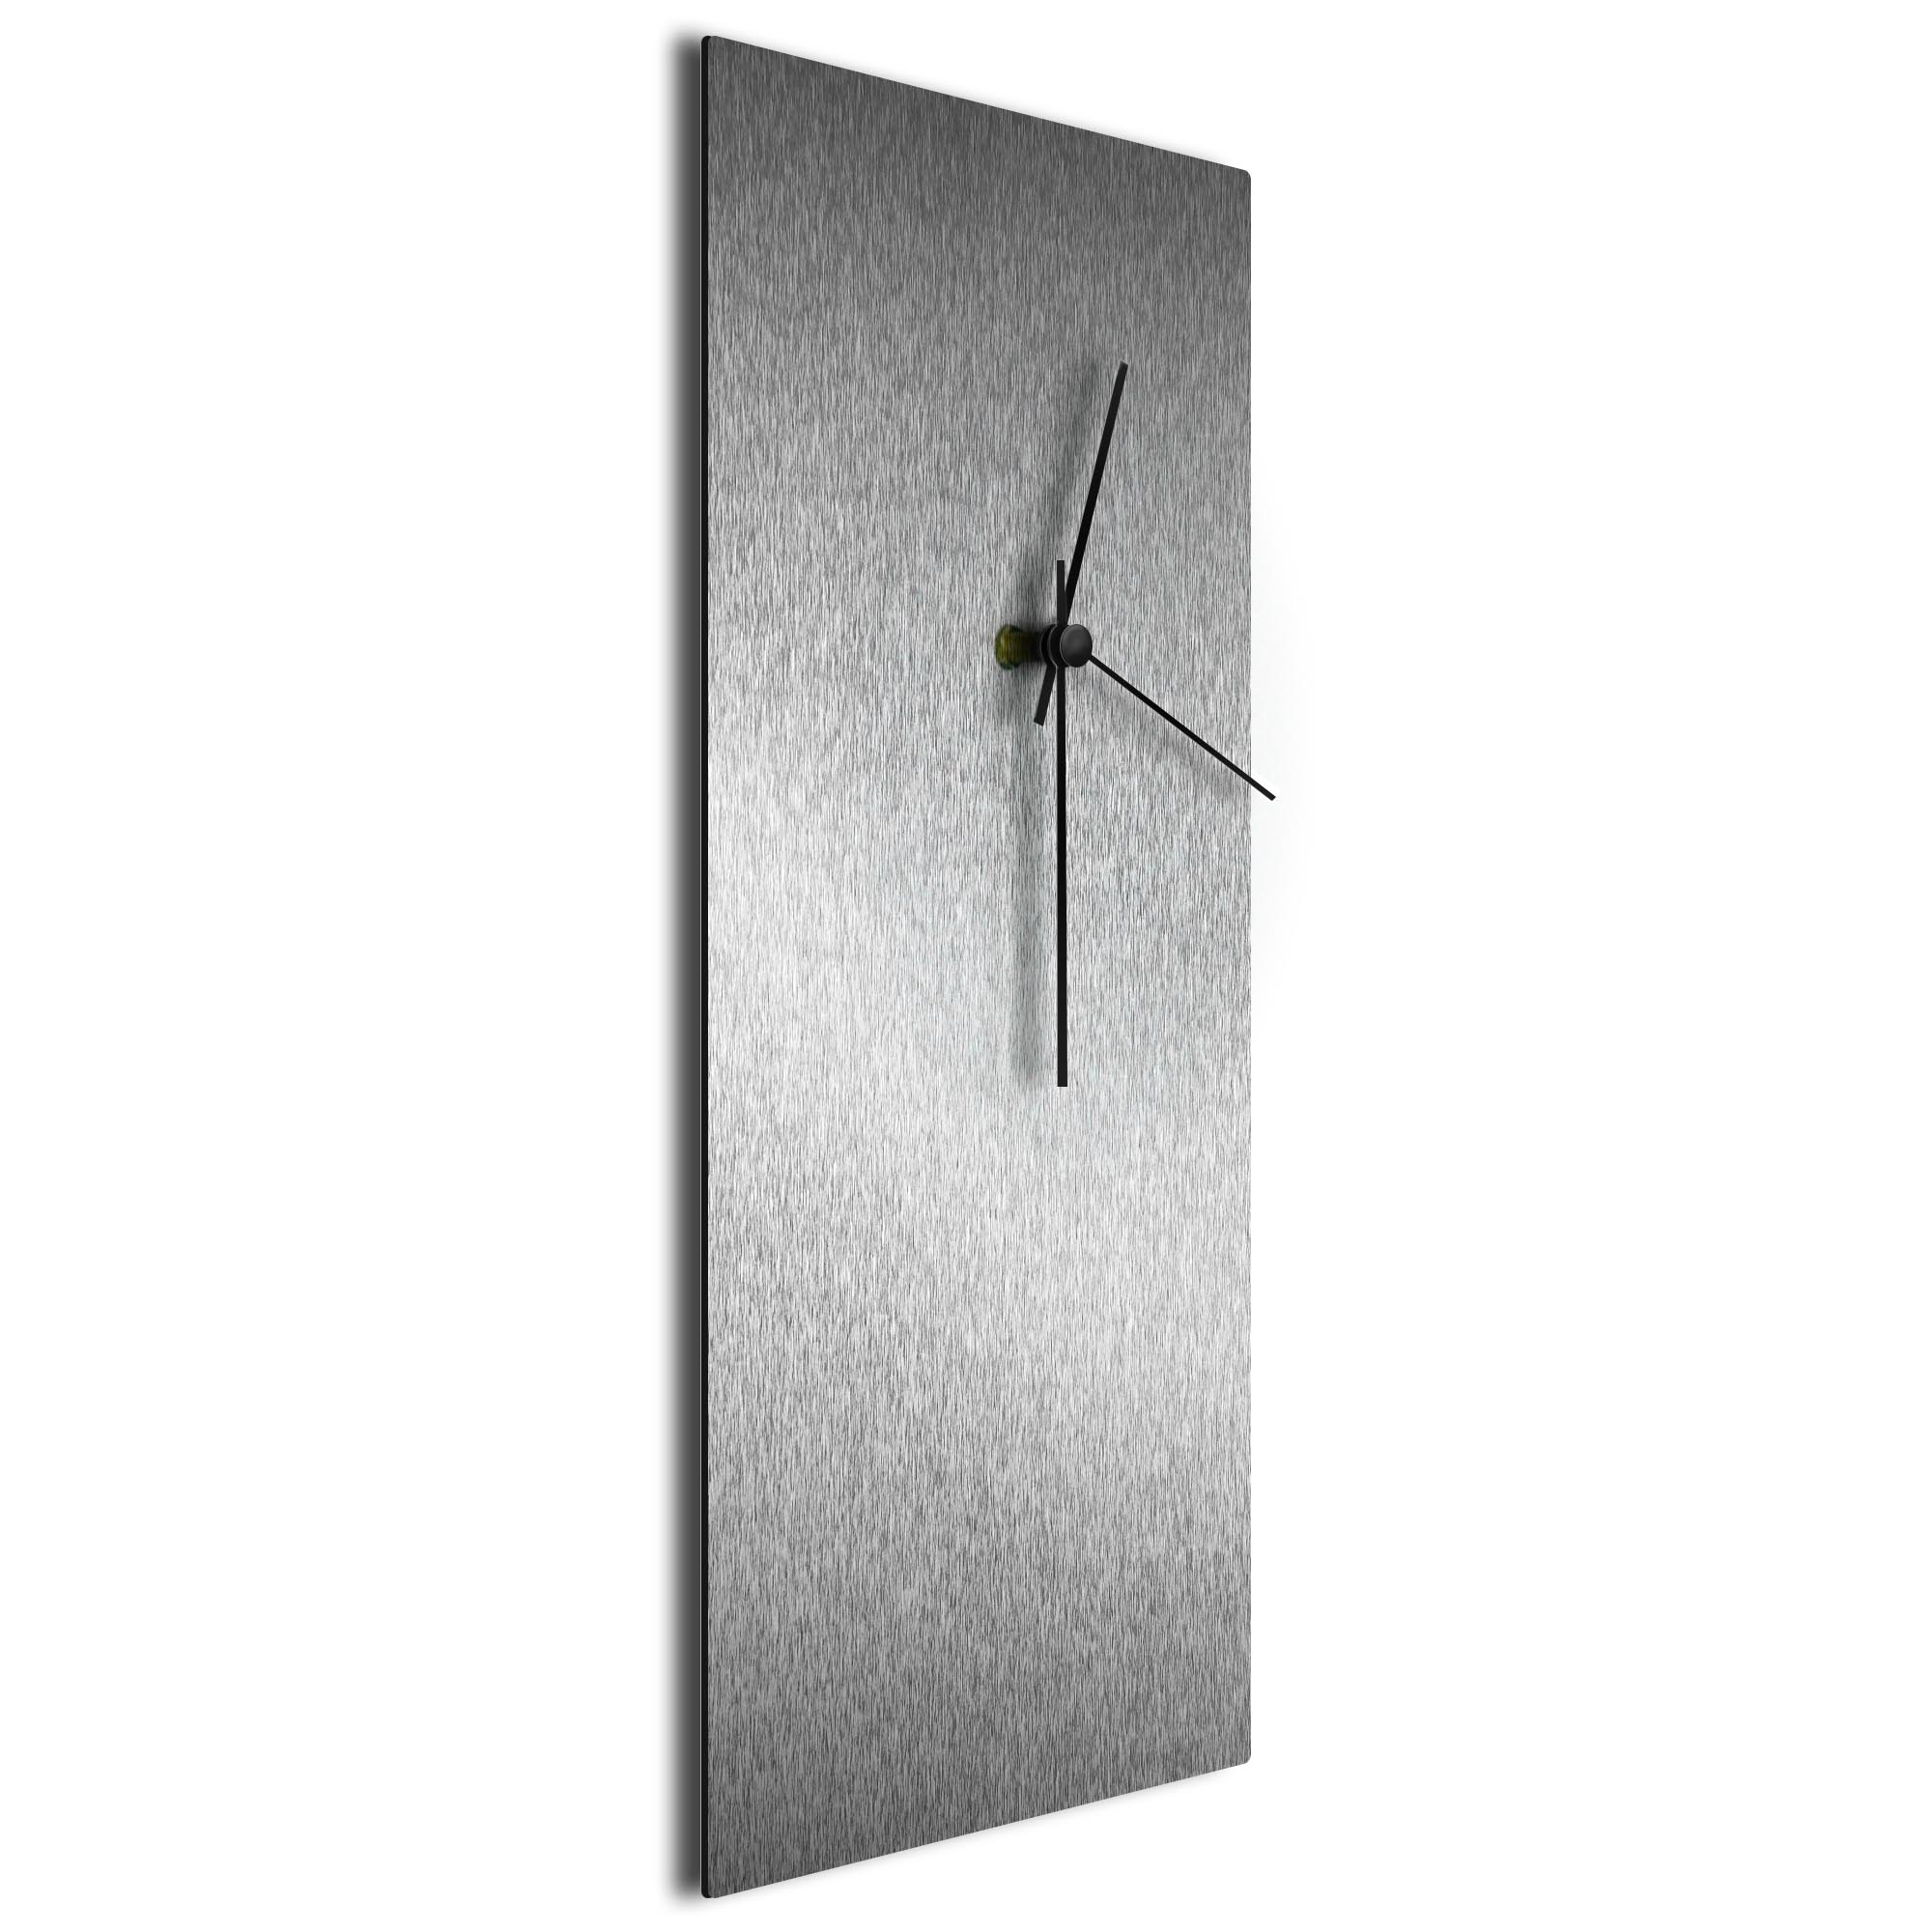 Silversmith Clock Large Black - Image 2